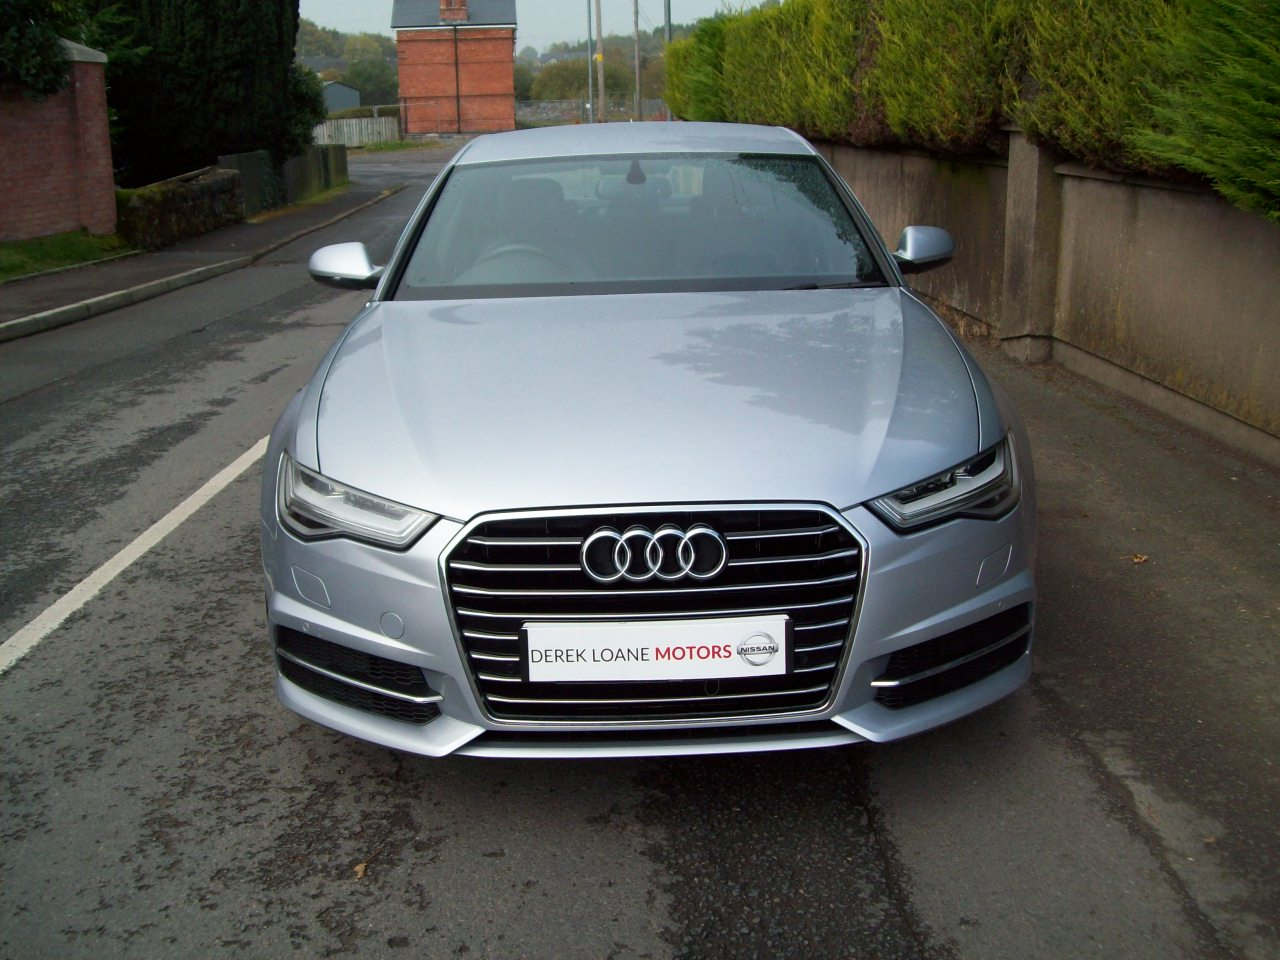 2016 Audi A6 Diesel Manual – Derek Loane Motors full